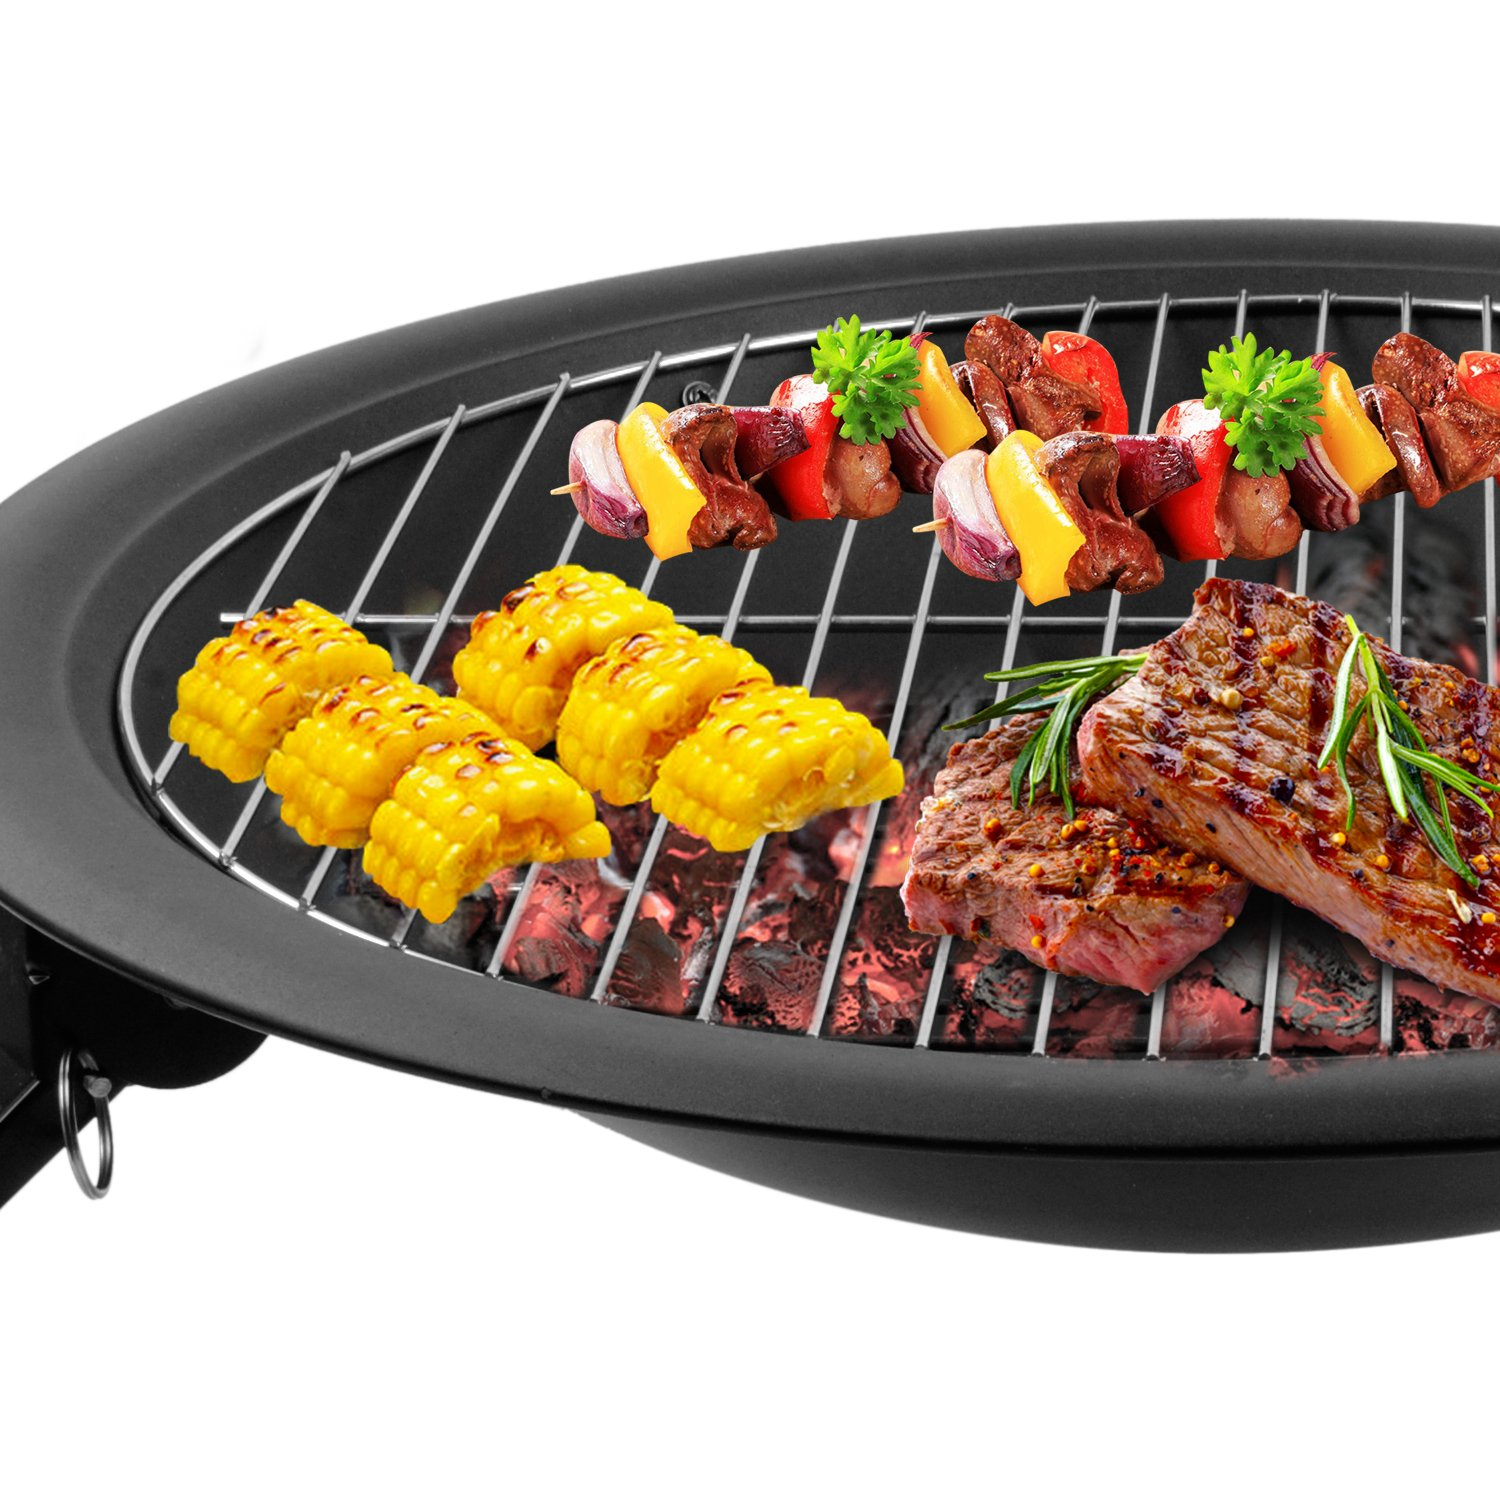 funime charcoal barbecue grilling with 4 foldable legs fire screen